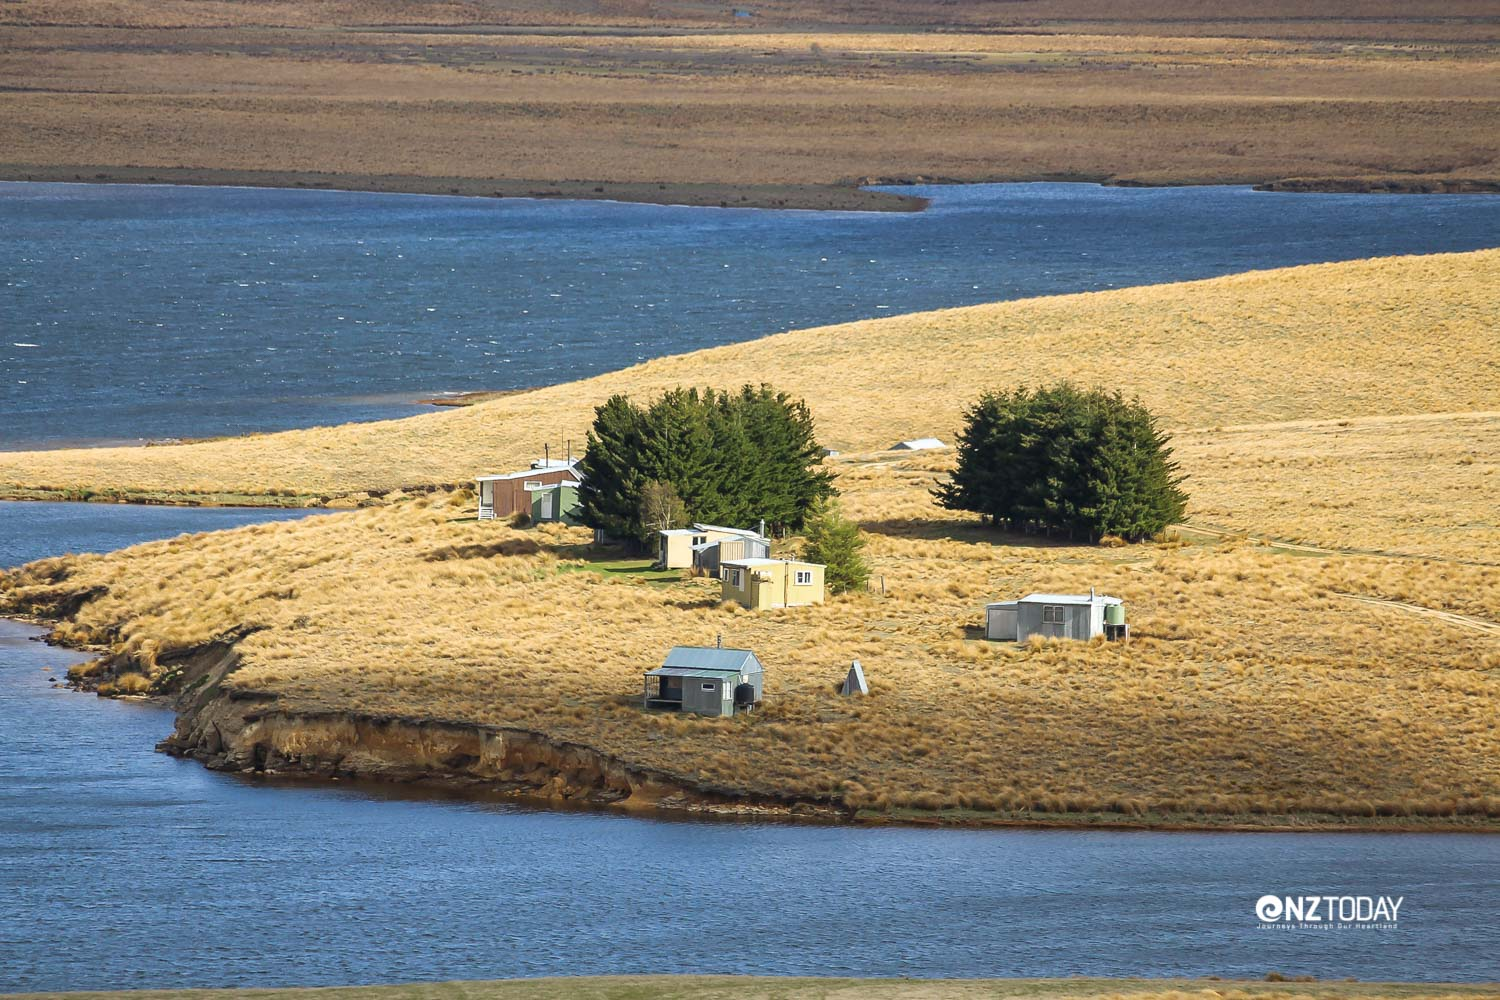 The collection of fishing huts at Lake Onslow